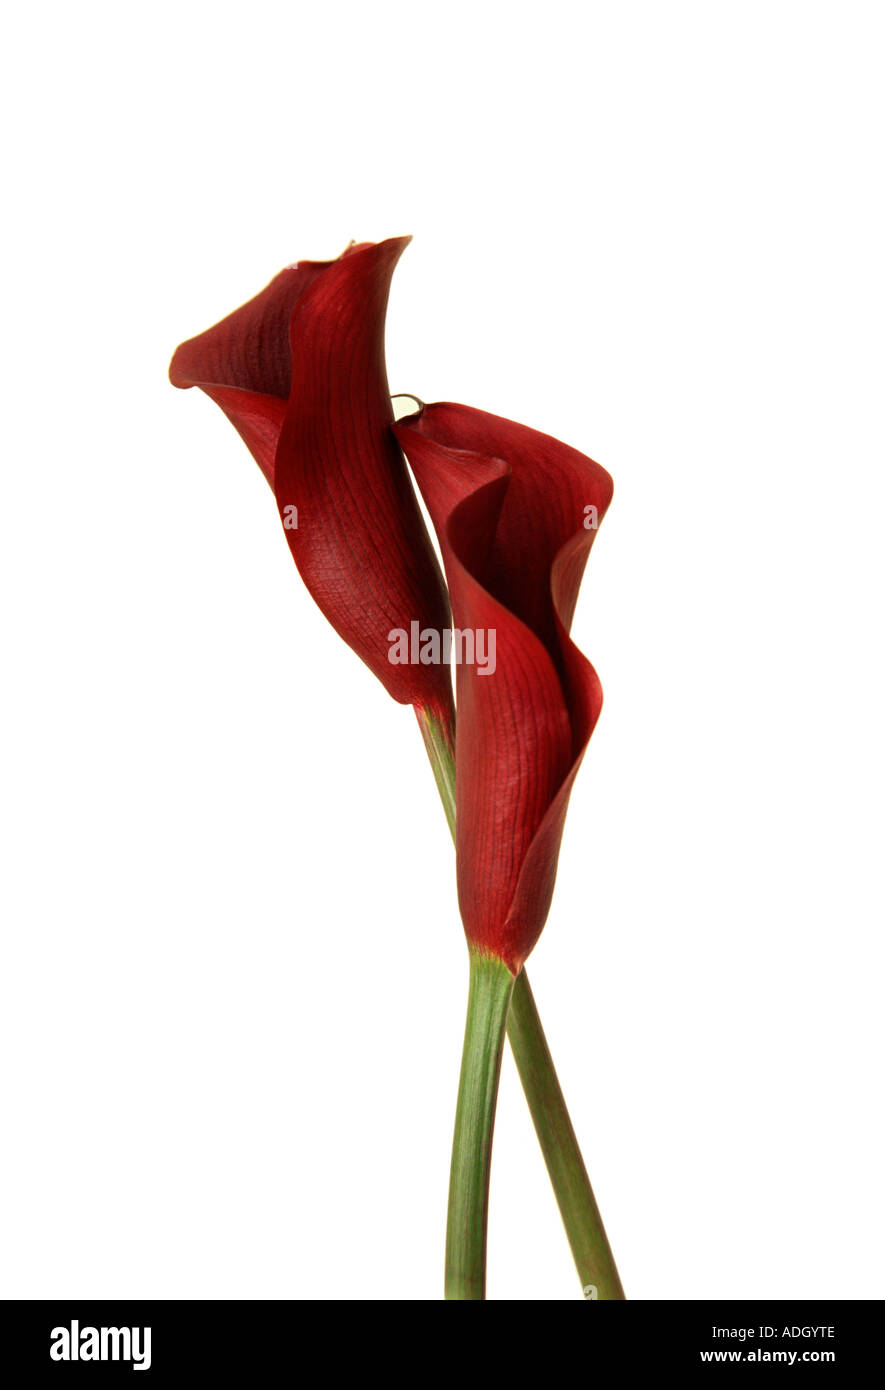 Red Flowers Calla Lilies Stock Photos Red Flowers Calla Lilies